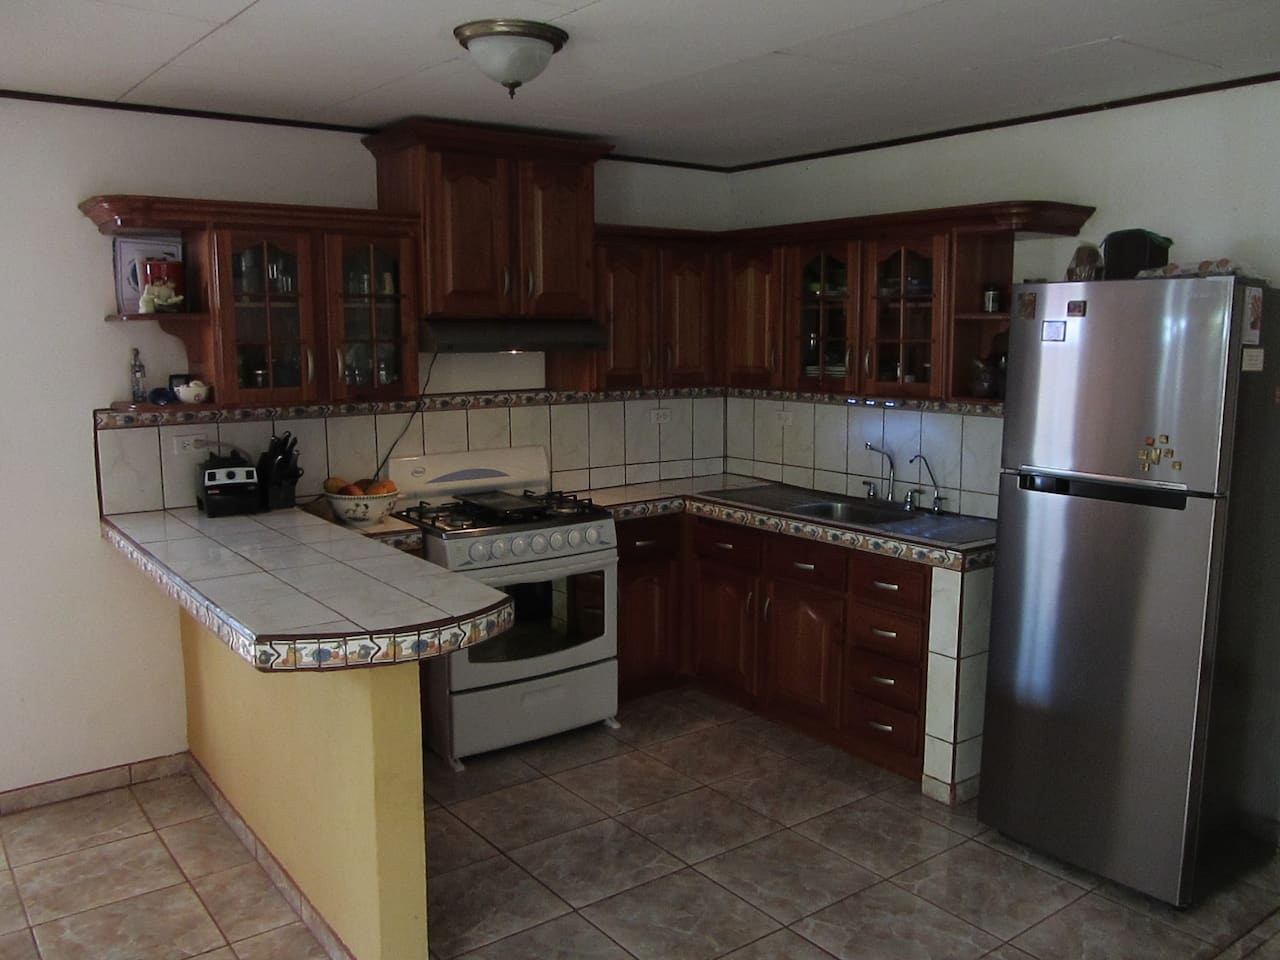 Our kitchen is very well equipped with new appliances, plenty of counter-tops and cabinetry for storage.